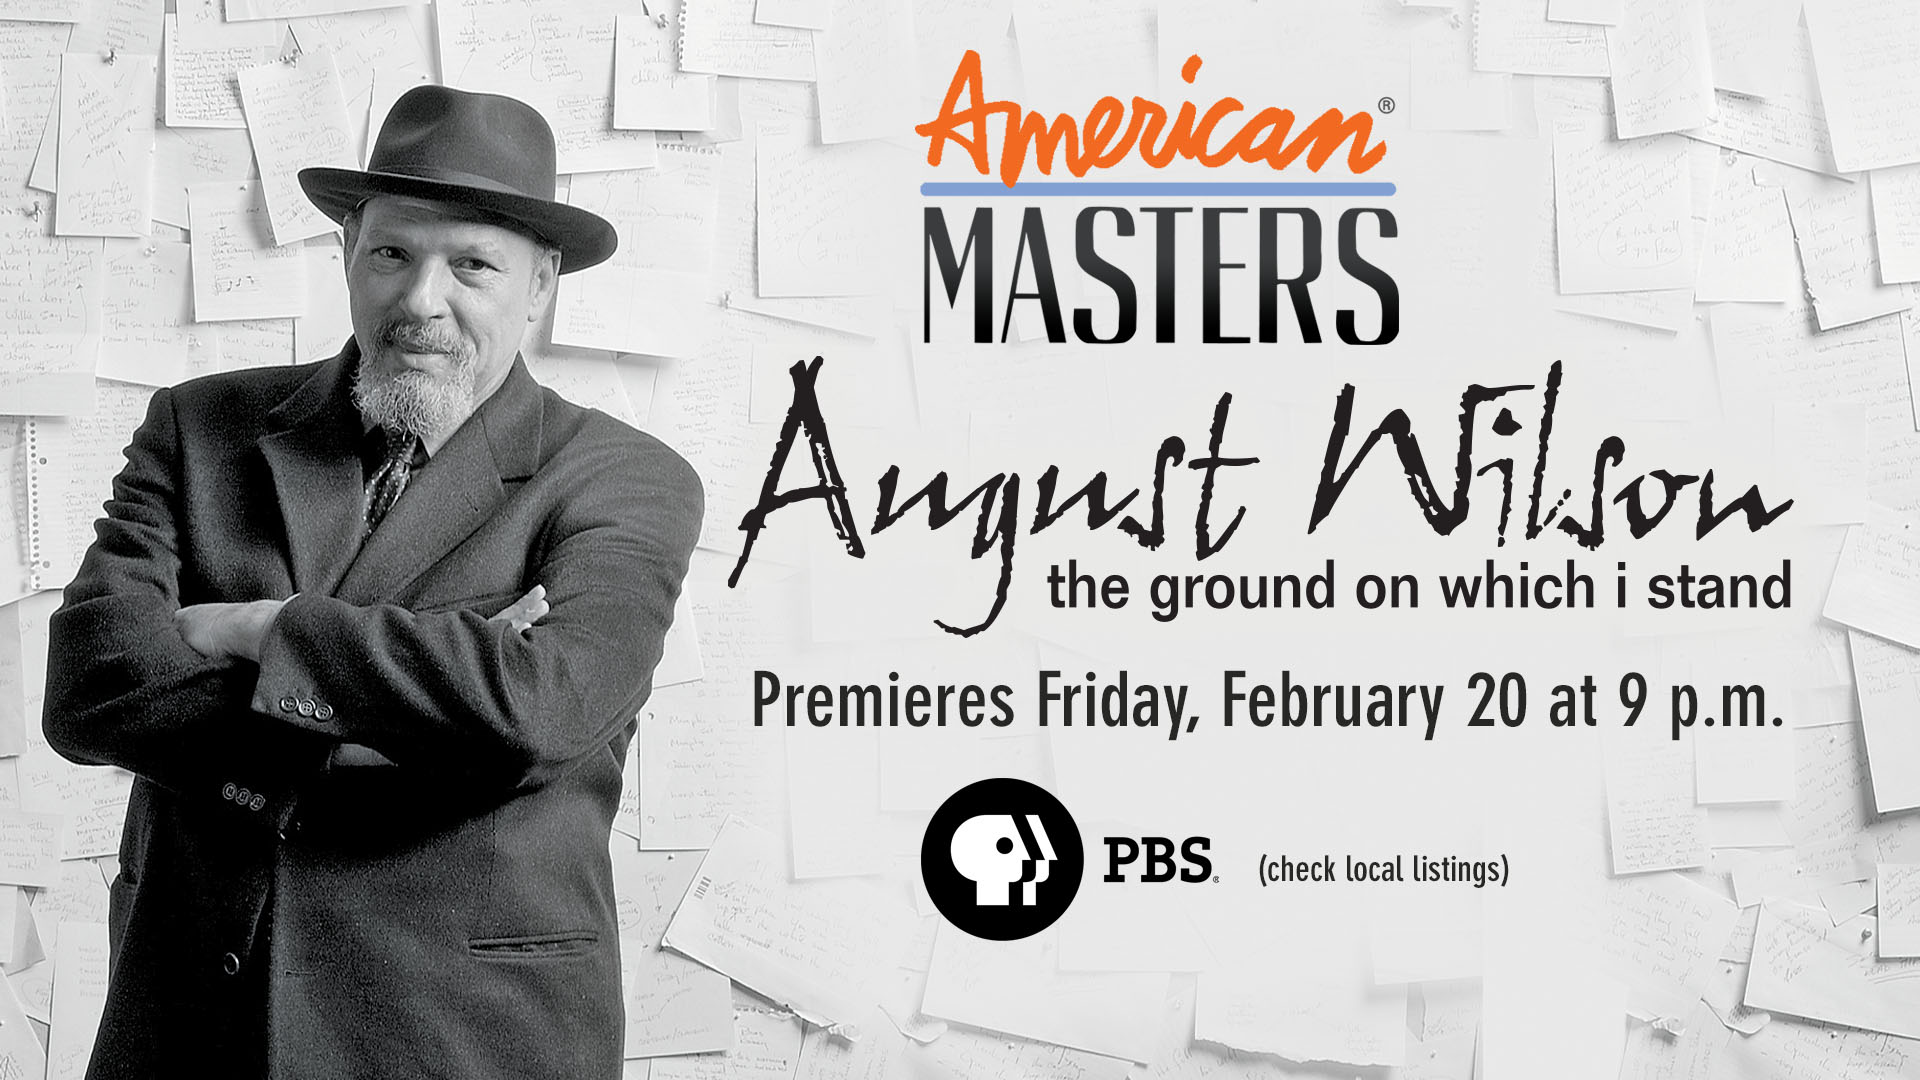 american masters season wilson the ground on american masters wilson key art